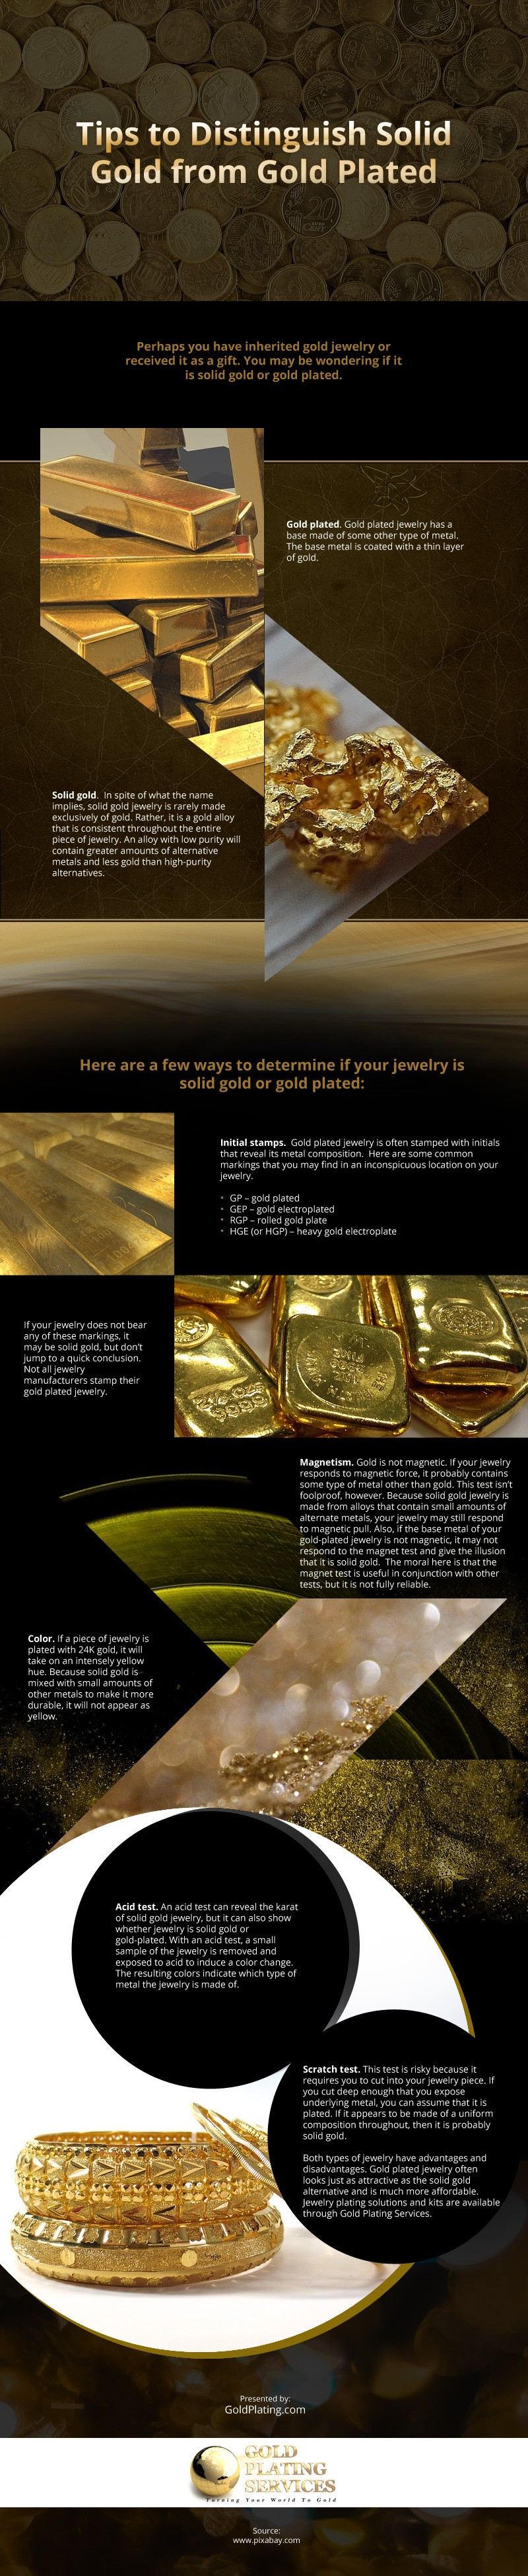 Tips-to-Distinguish-Solid-Gold-from-Gold-Plated Infographic